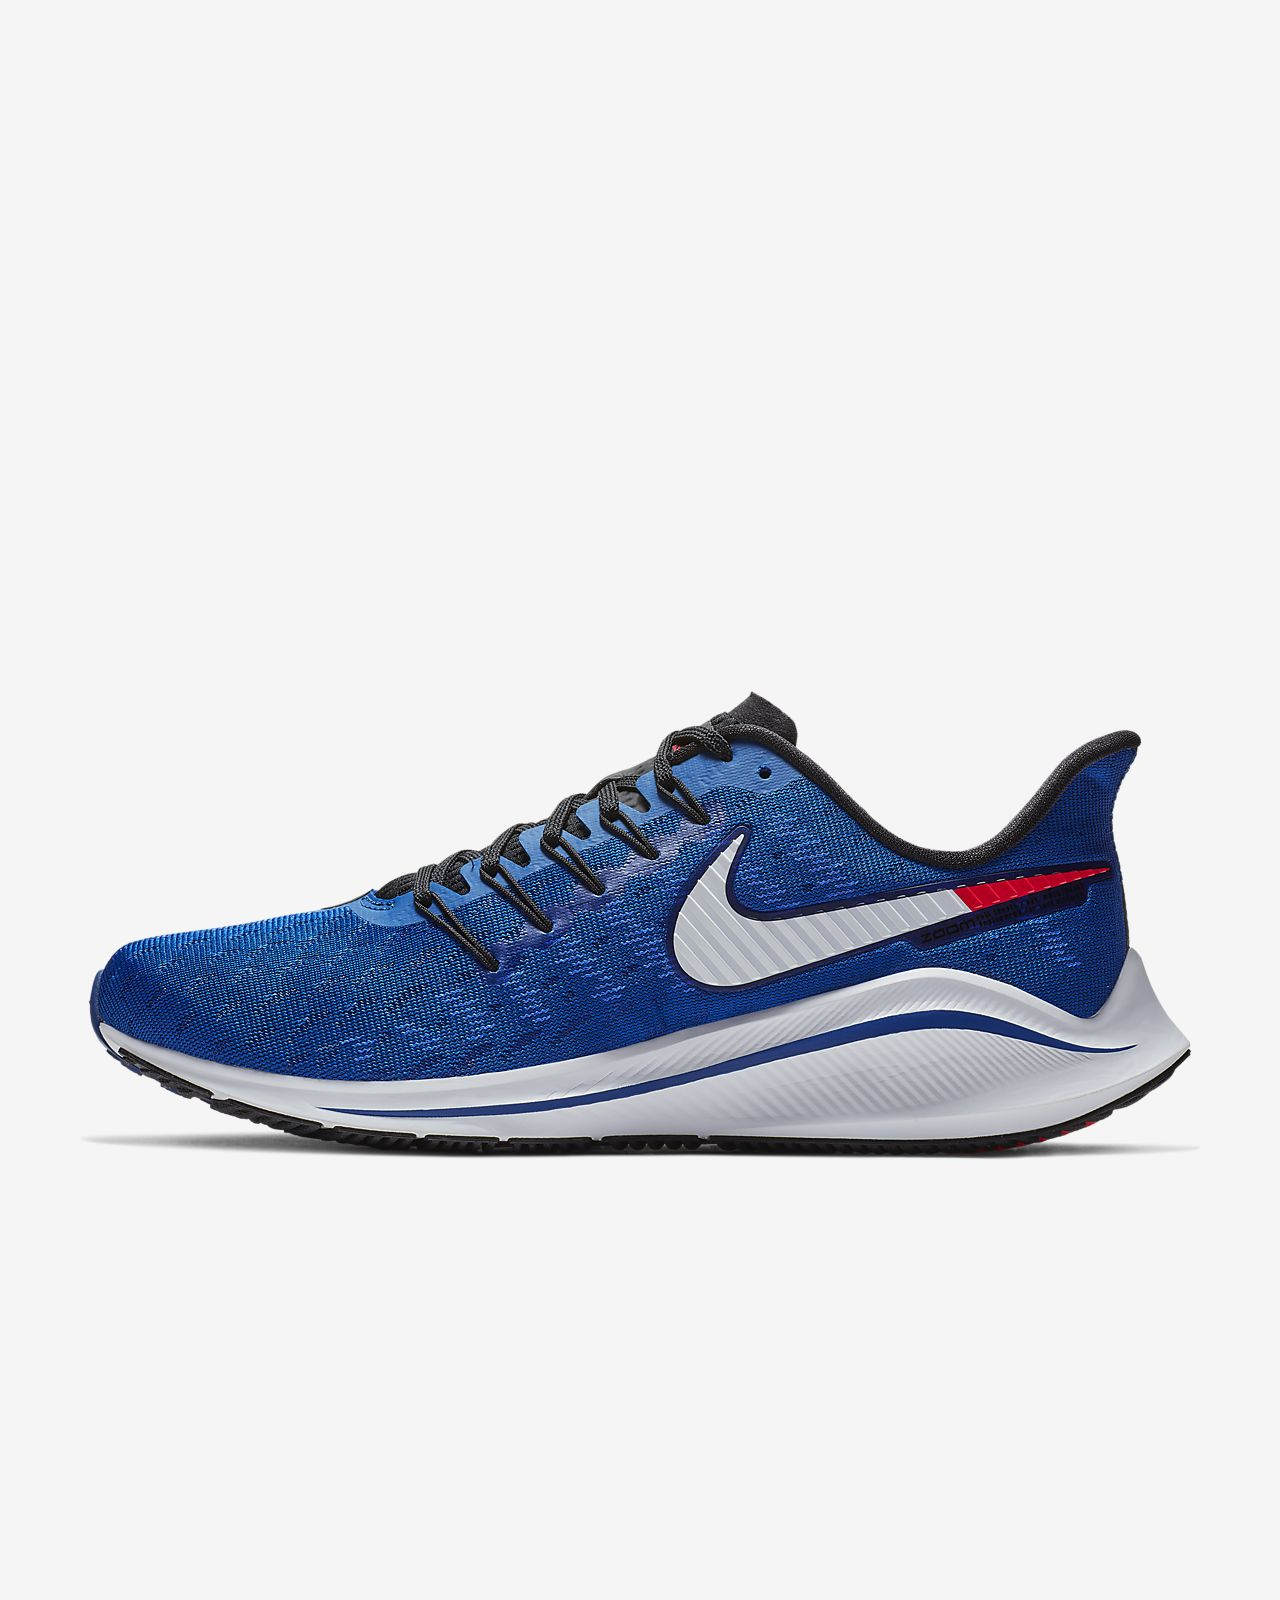 lowest price 8b2bb d77bc ... Chaussure de running Nike Air Zoom Vomero 14 pour Homme